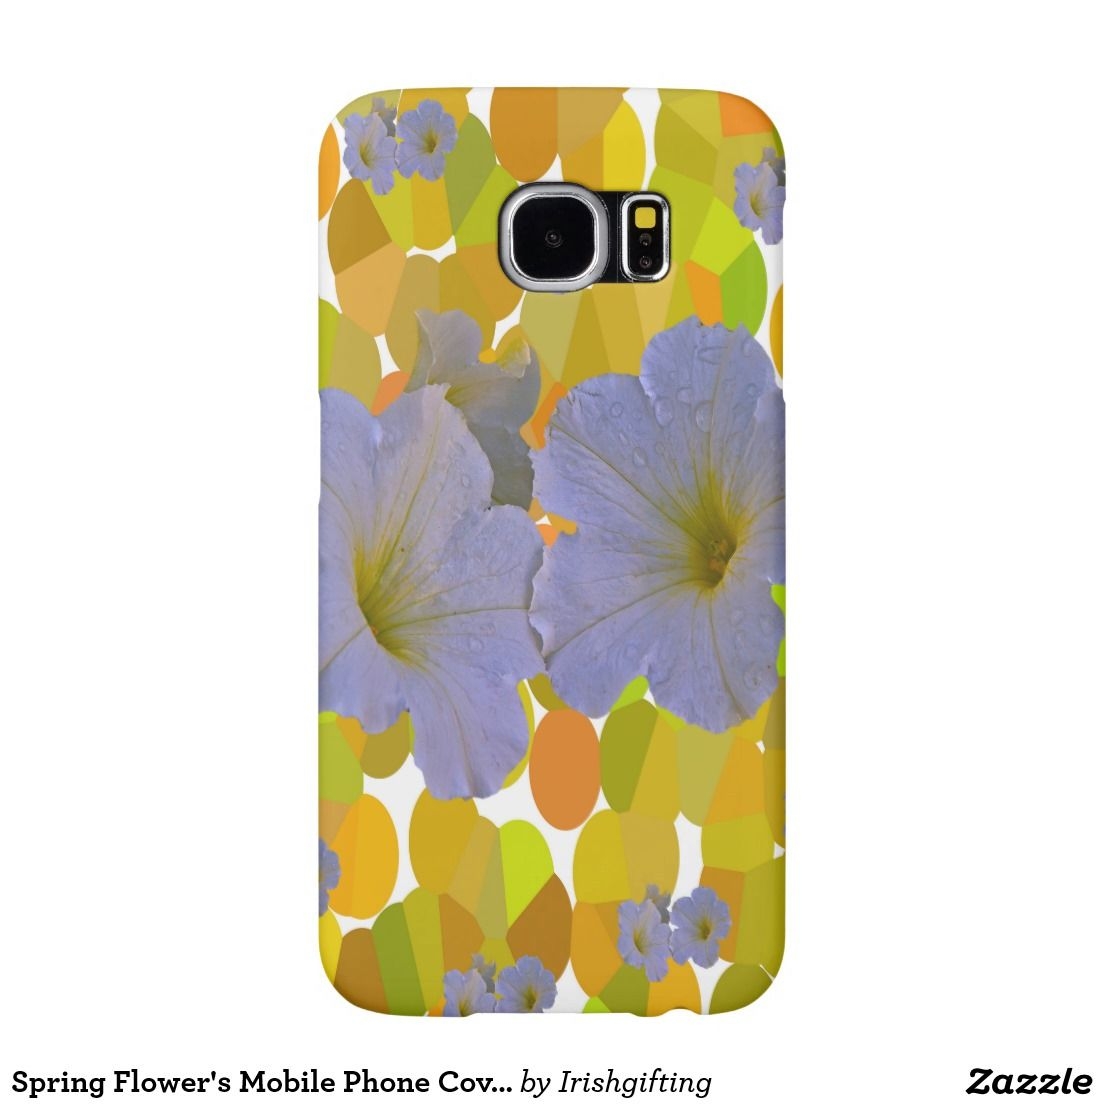 Spring Flower's Mobile Phone Covers Samsung Galaxy S6 Cases